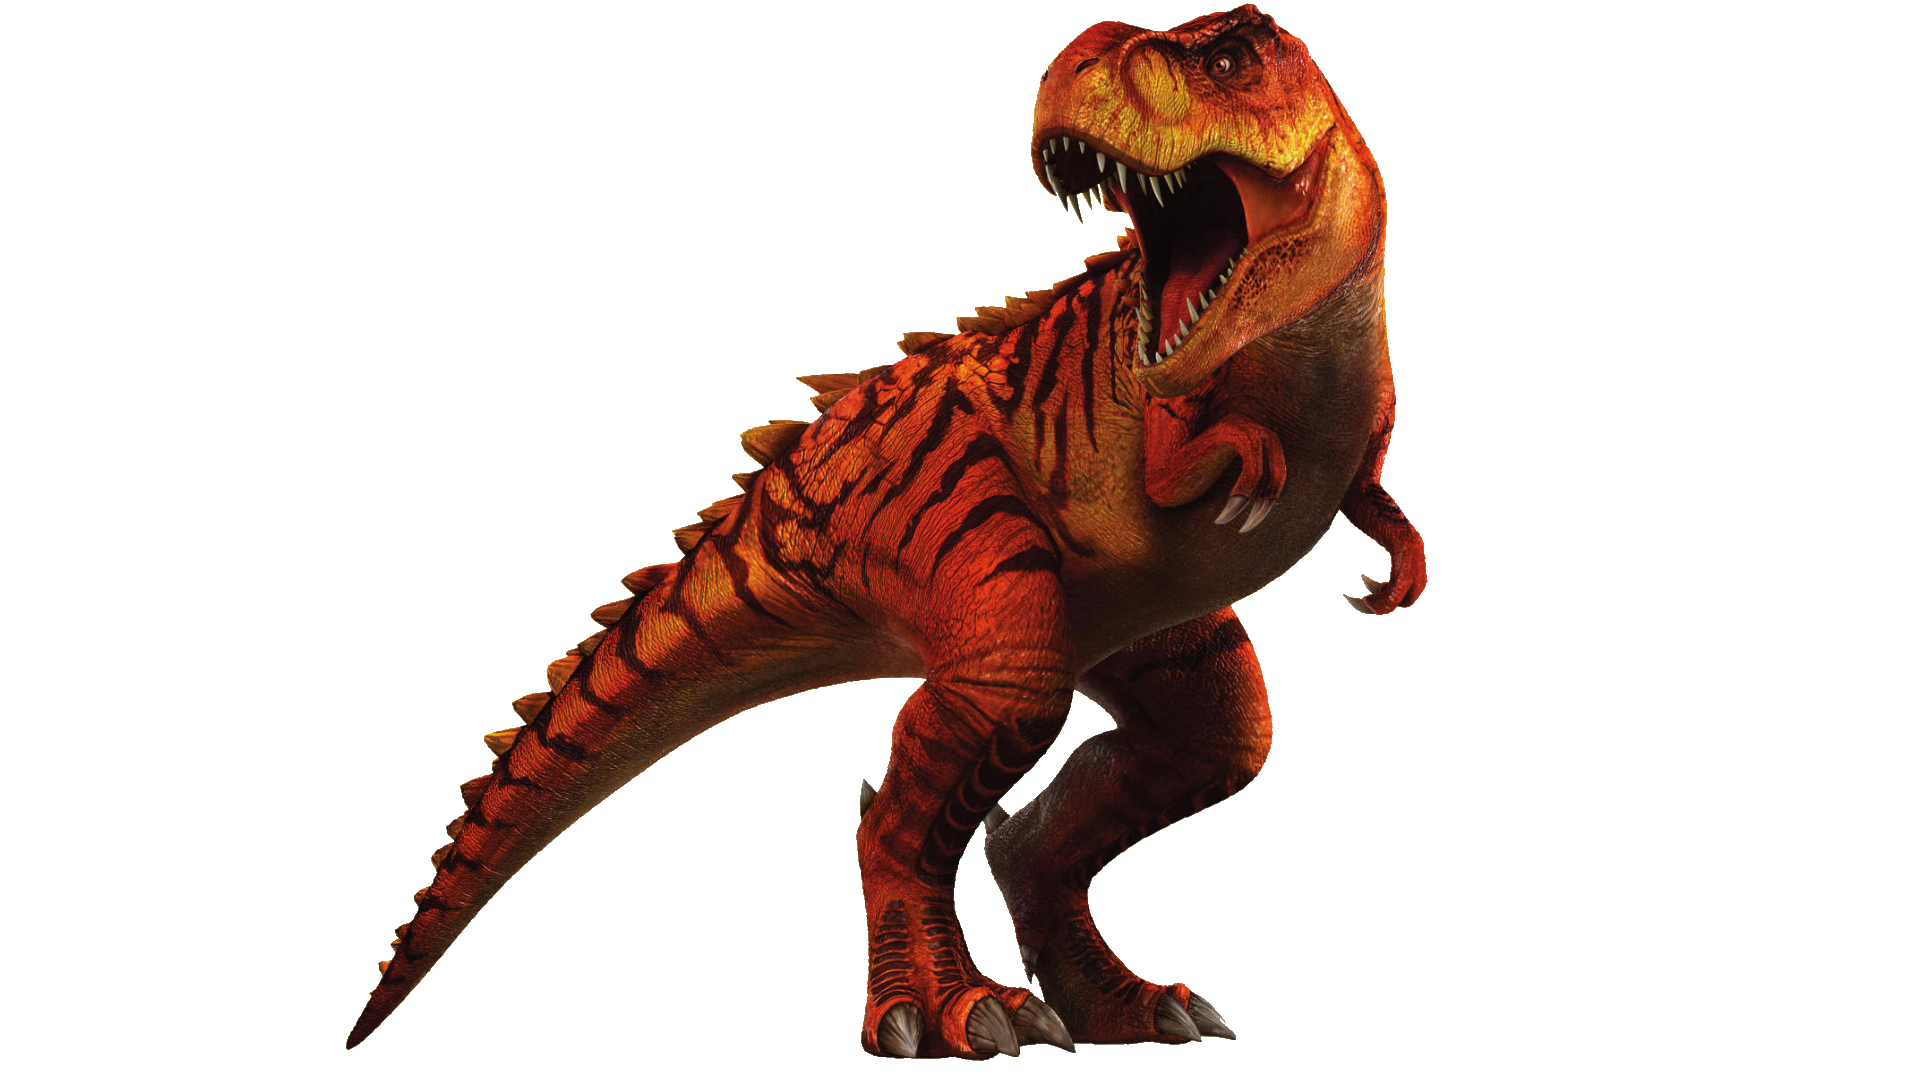 Jurassic World The Game Hybrid T Rex By Sonichedgehog2 On